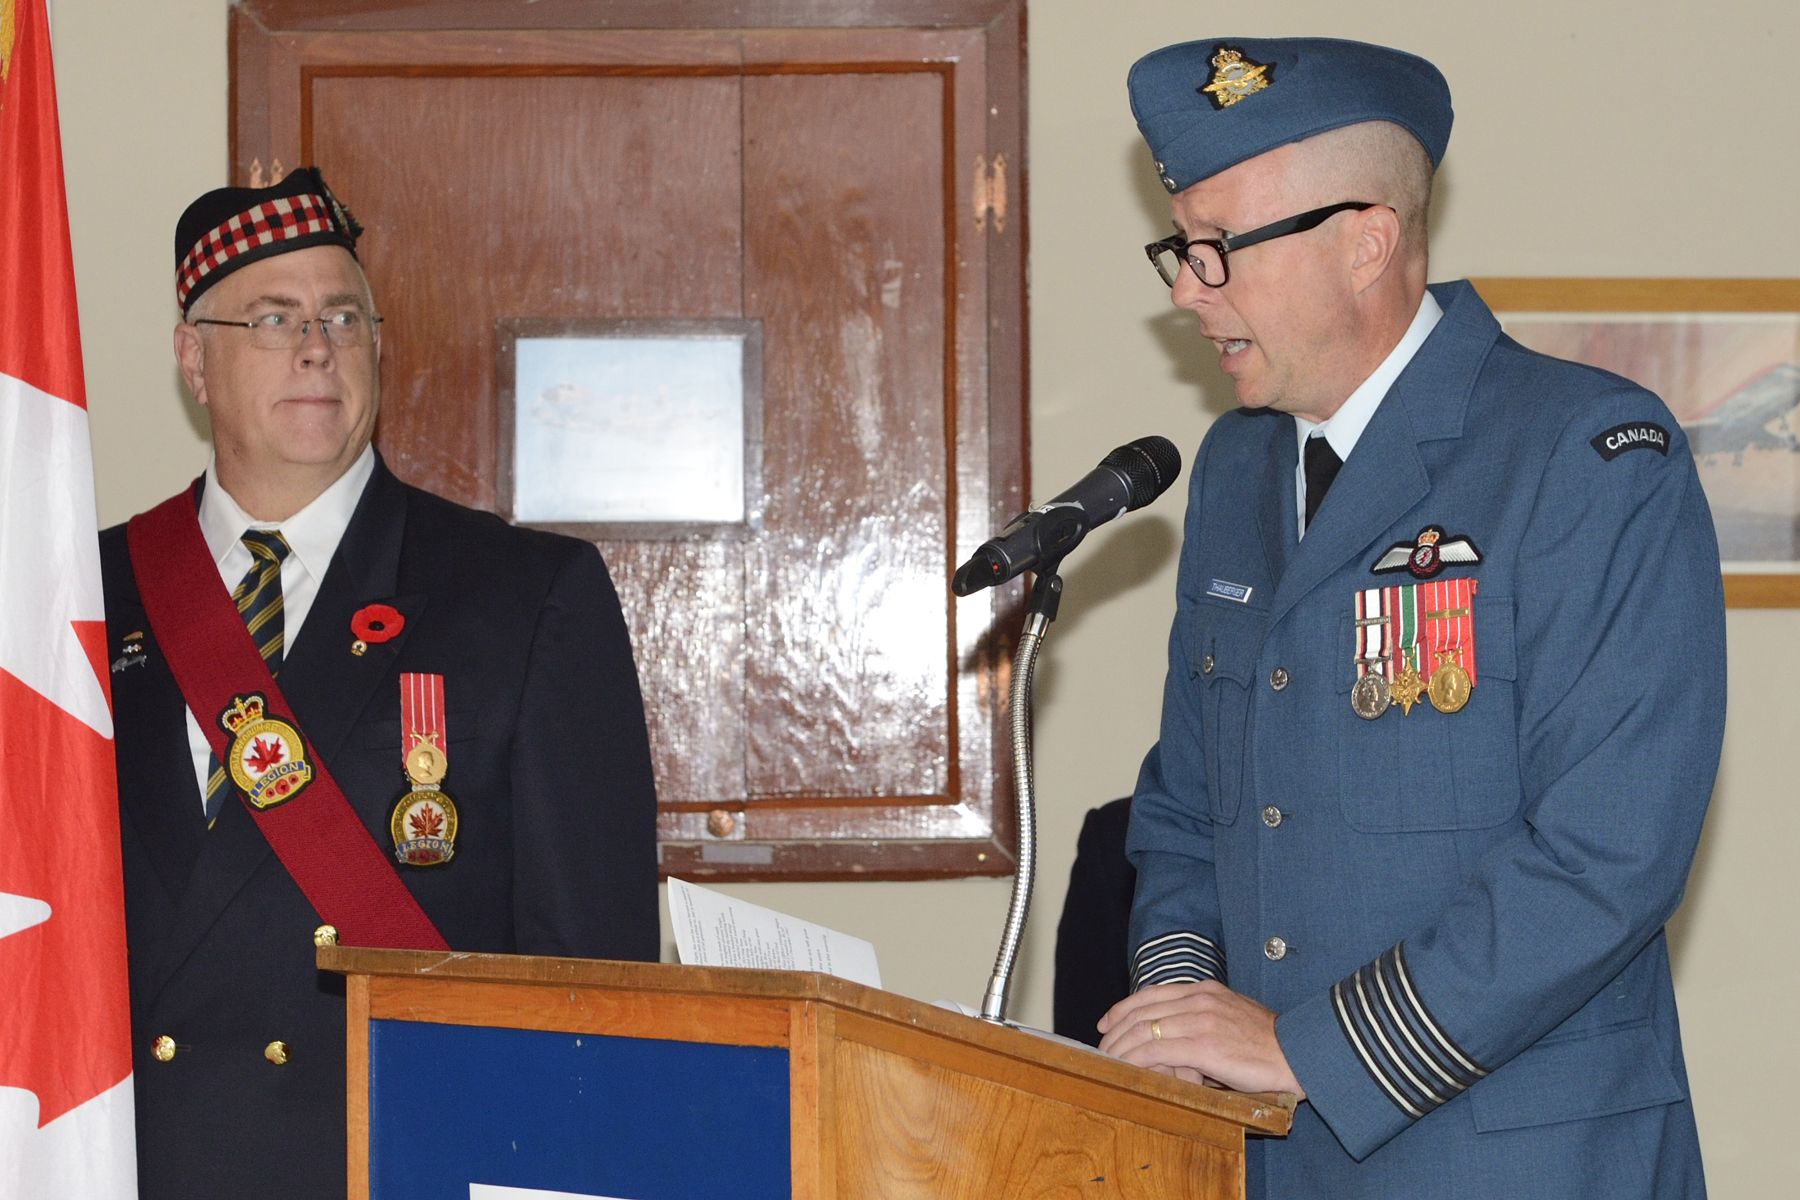 14 Wing Greenwood commander, Colonel Patrick Thauberger, delivers an address during the 2016 Battle of Britain parade held in the 107 Royal Canadian Air Force Association building in Greenwood, Nova Scotia, on September 18, 2016. PHOTO: Corporal Daniel Salisbury, GD2016-0549-03